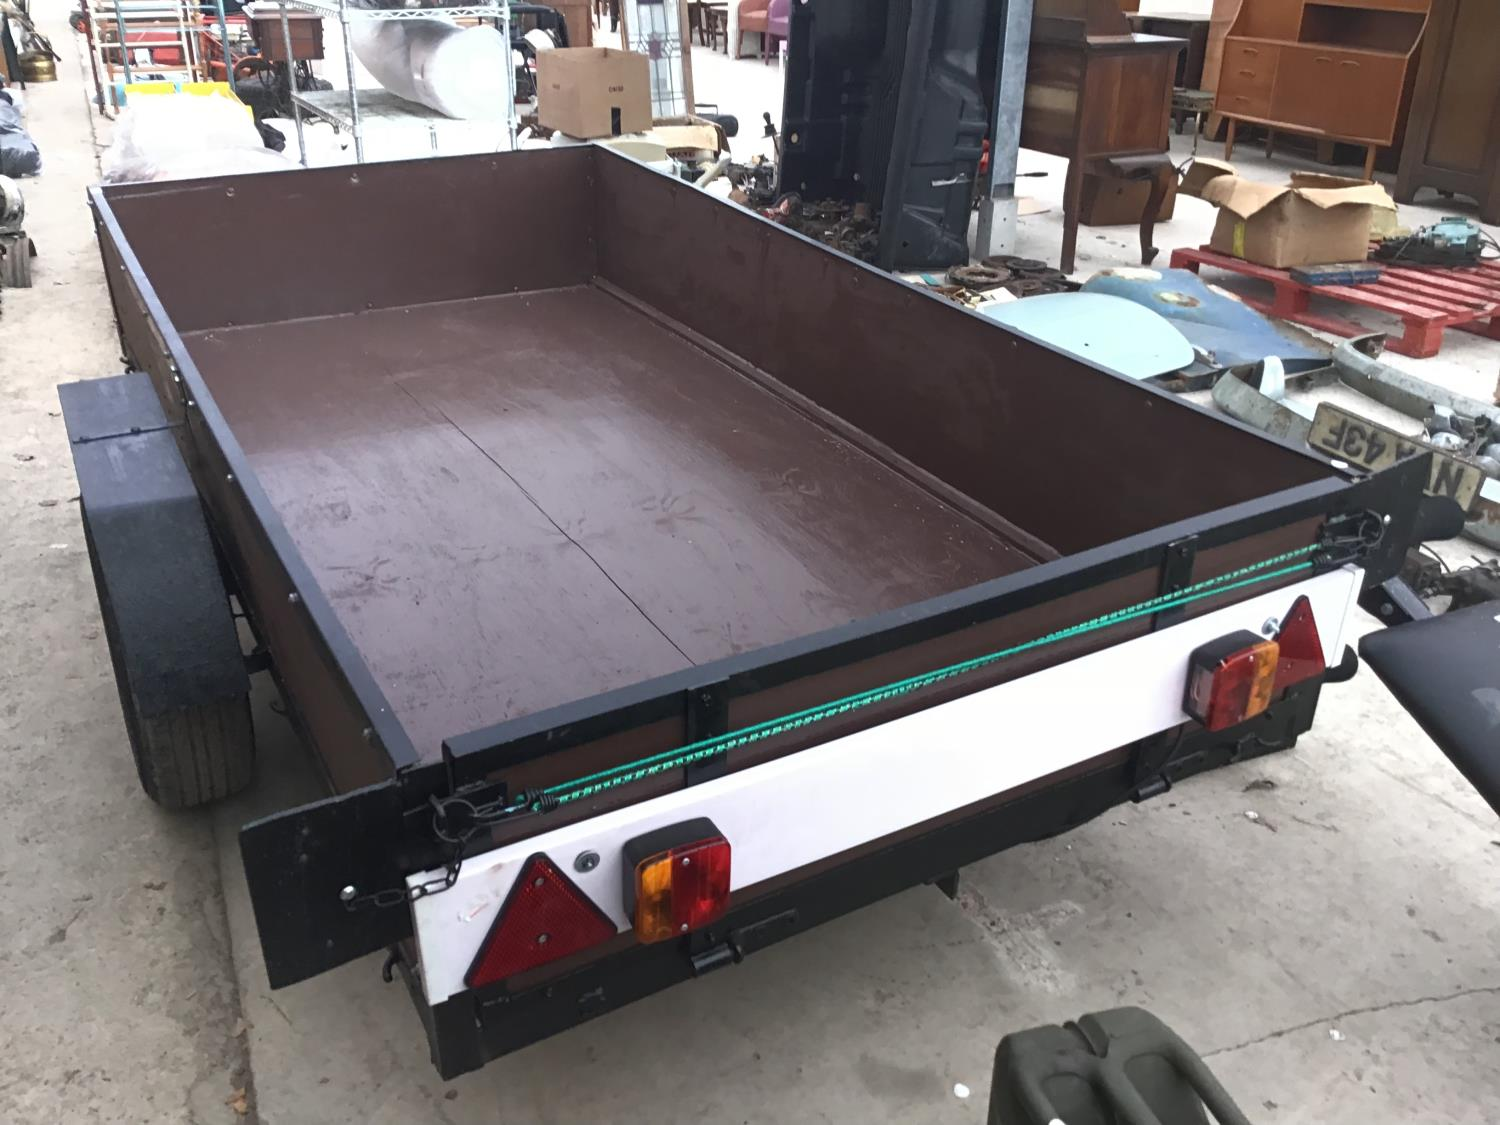 Lot 44 - AN 8FT X 4FT WOODEN CAR TRAILER WITH TRAILER BOARD AND INTEGRATED BRAKING SYSTEM IN GOOD CONDITION